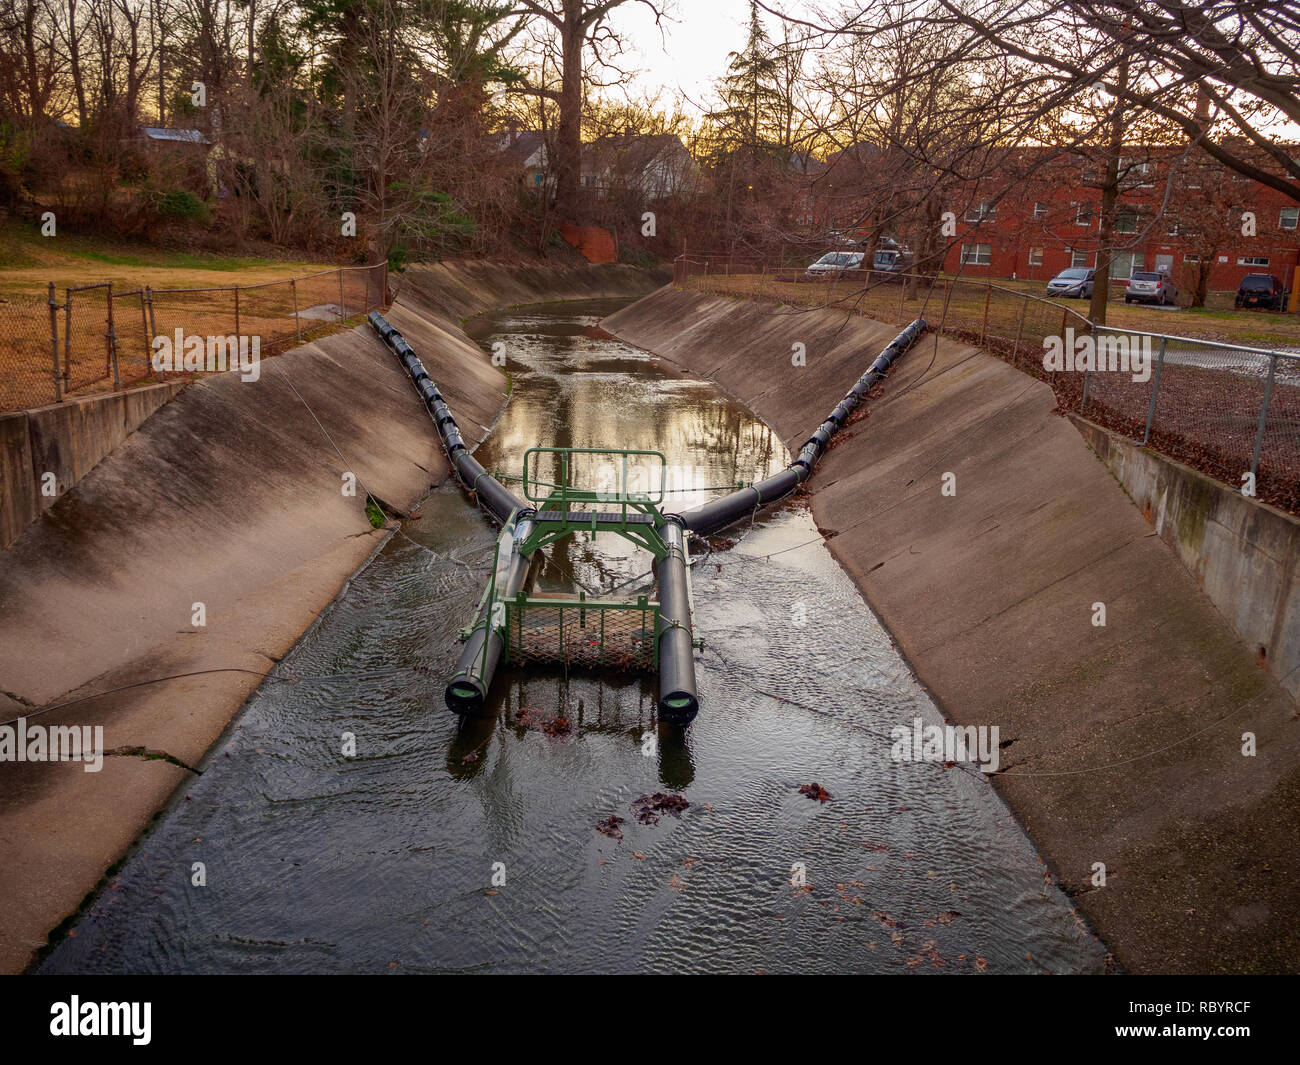 Trash Trap in Concrete Channel on the way to Northwest Branch of the Anacostia River - Stock Image